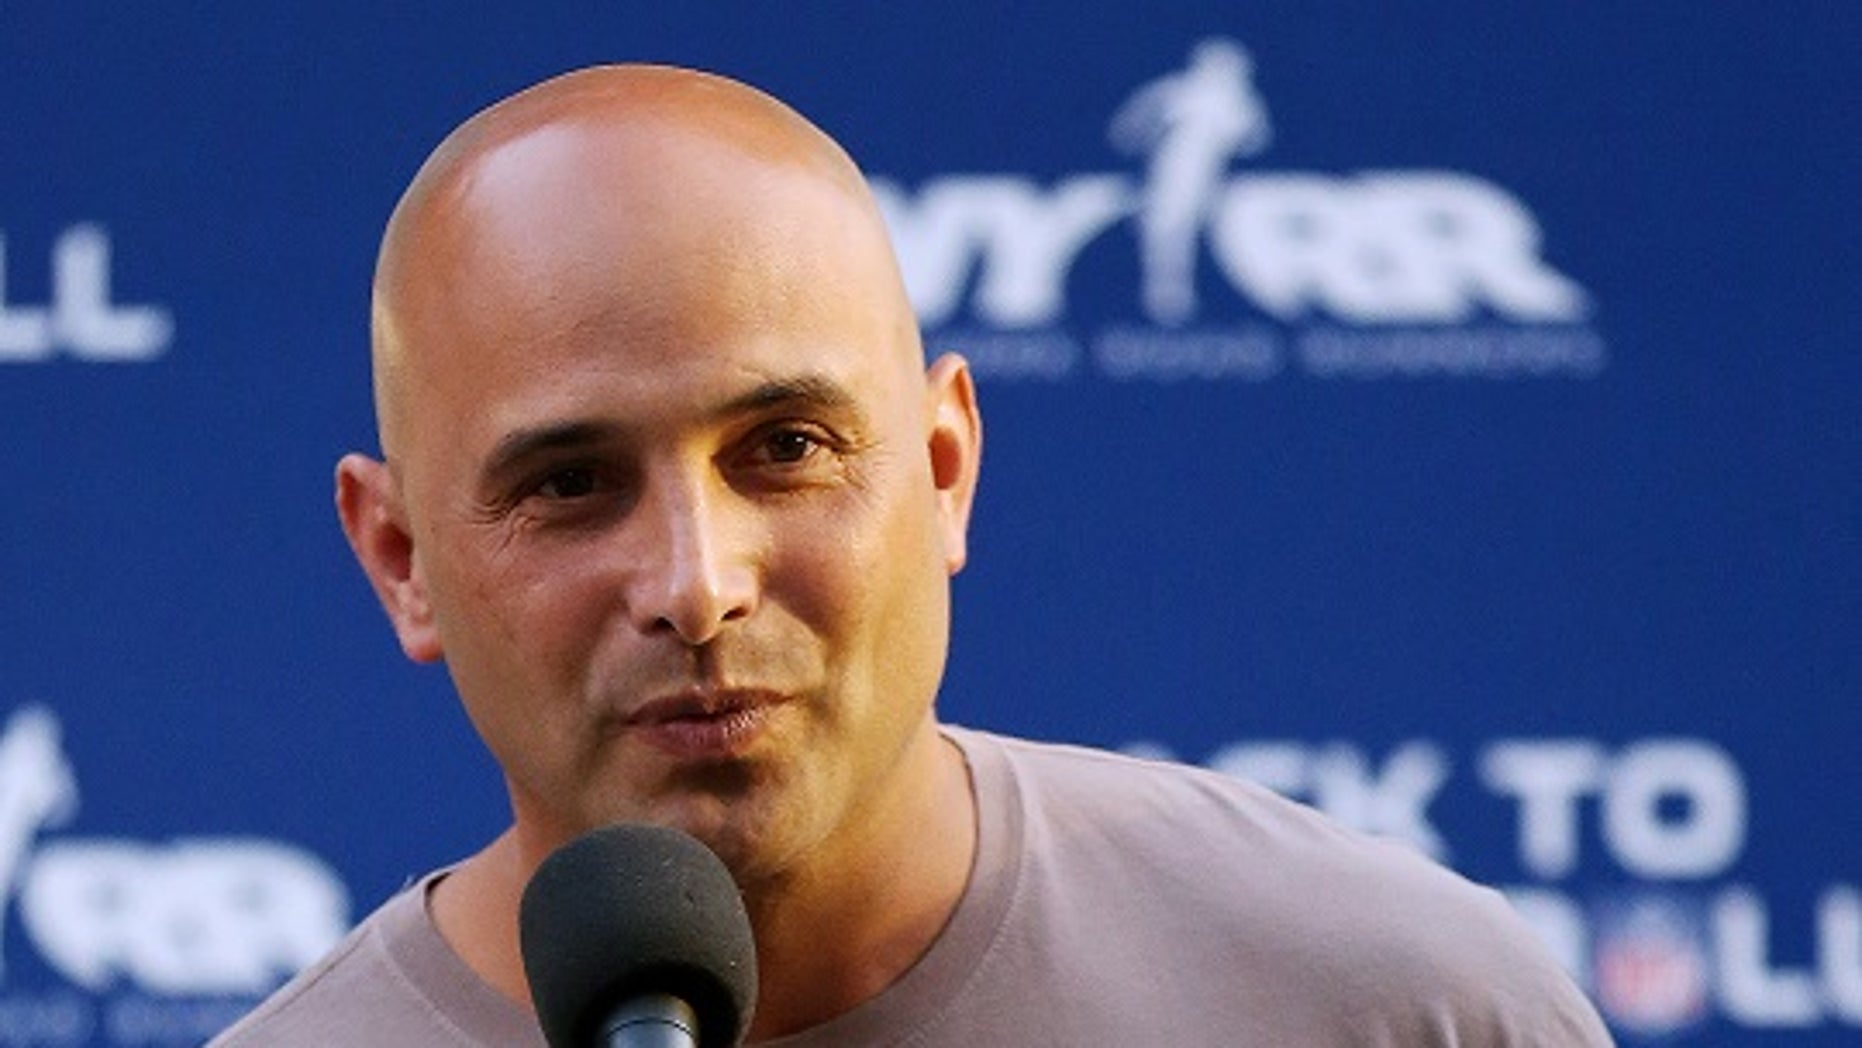 Craig Carton was arrested by FBI officials Wednesday at his Manhattan apartment.